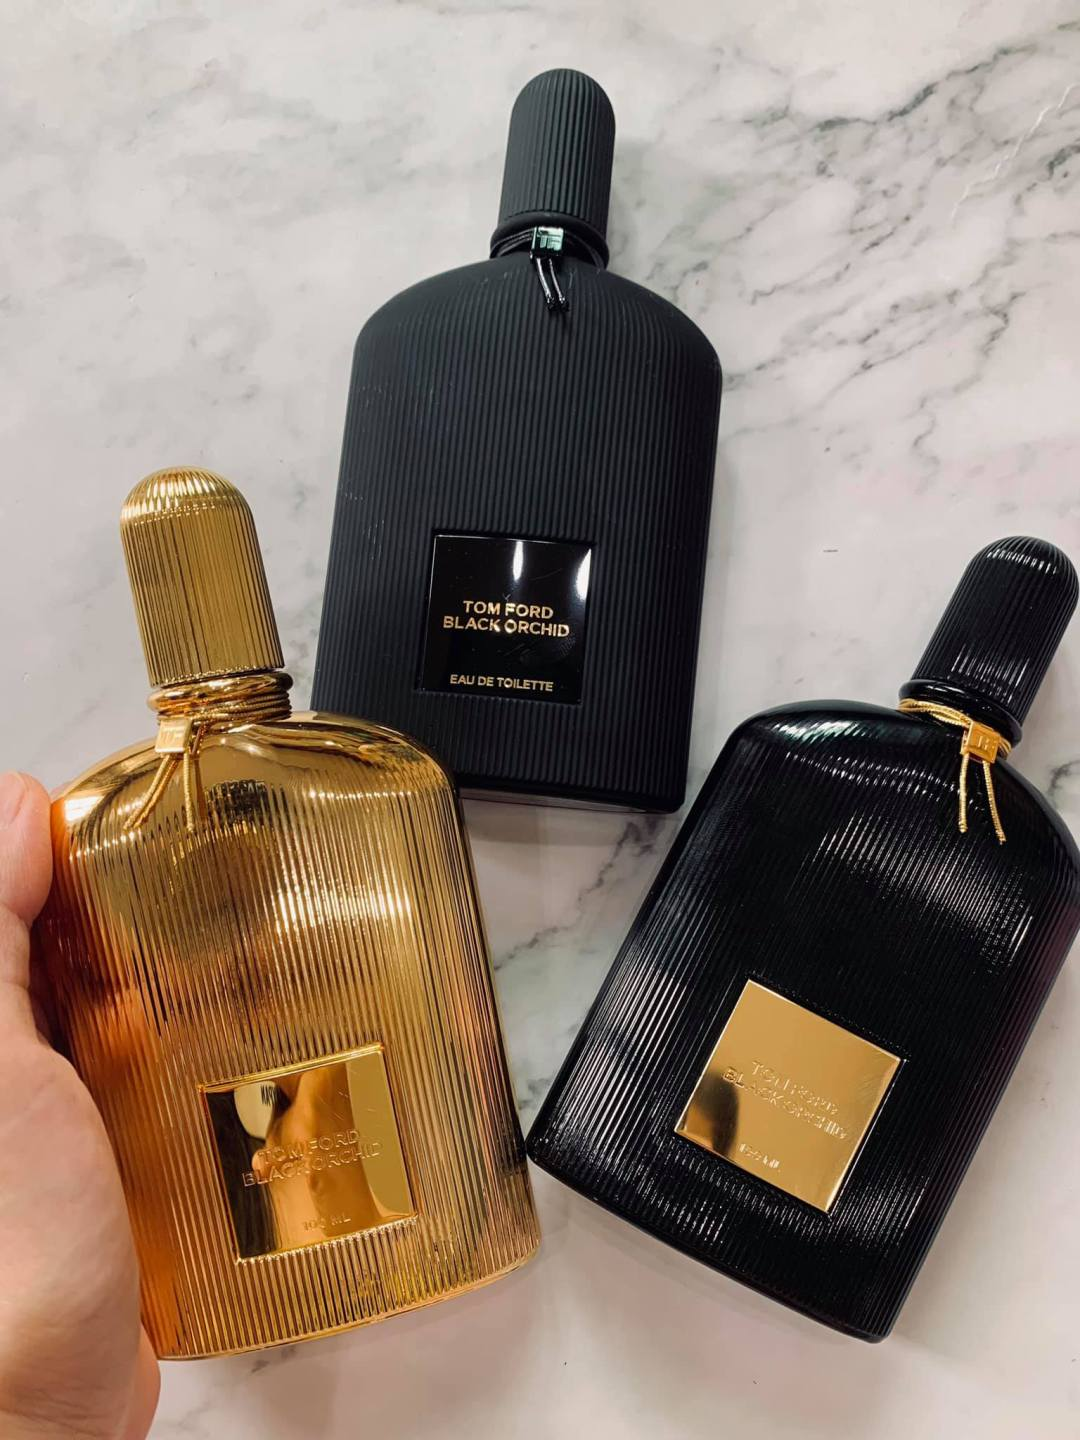 free-tom-ford-black-orchid-parfum